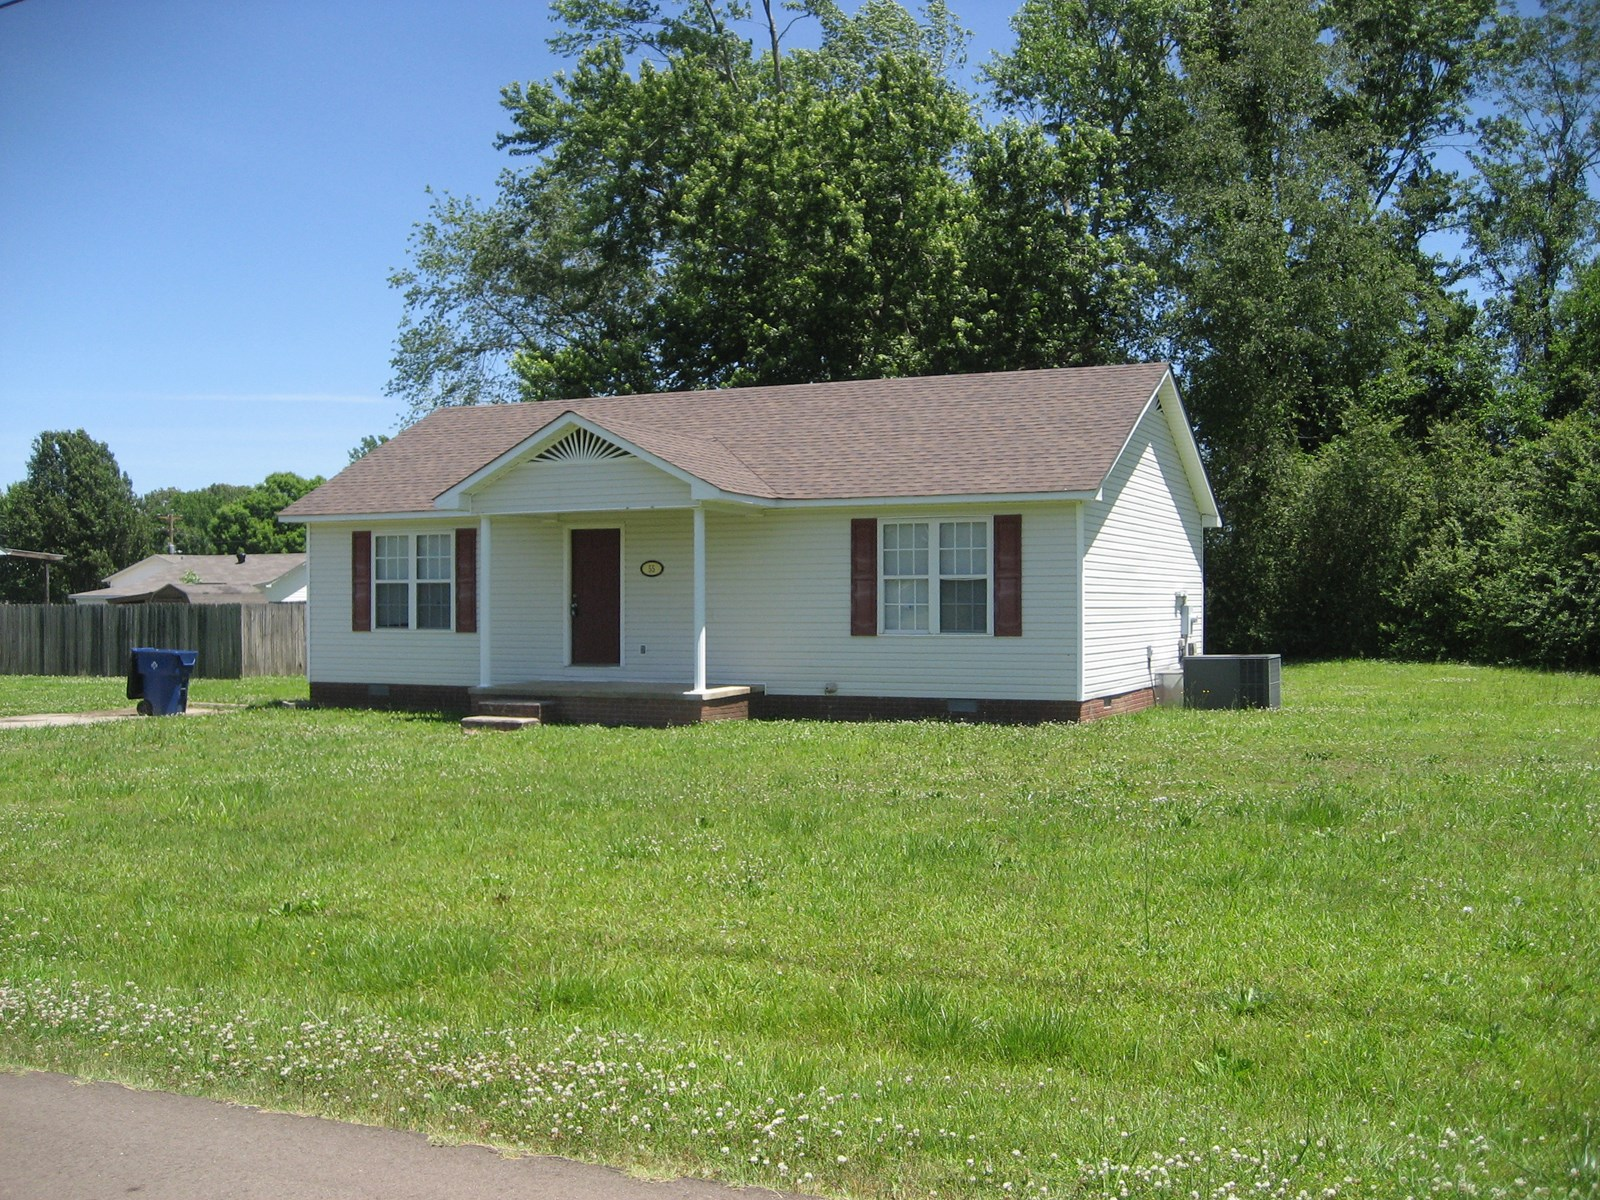 3 BEDROOM HOME FOR SALE IN HARDIN COUNTY